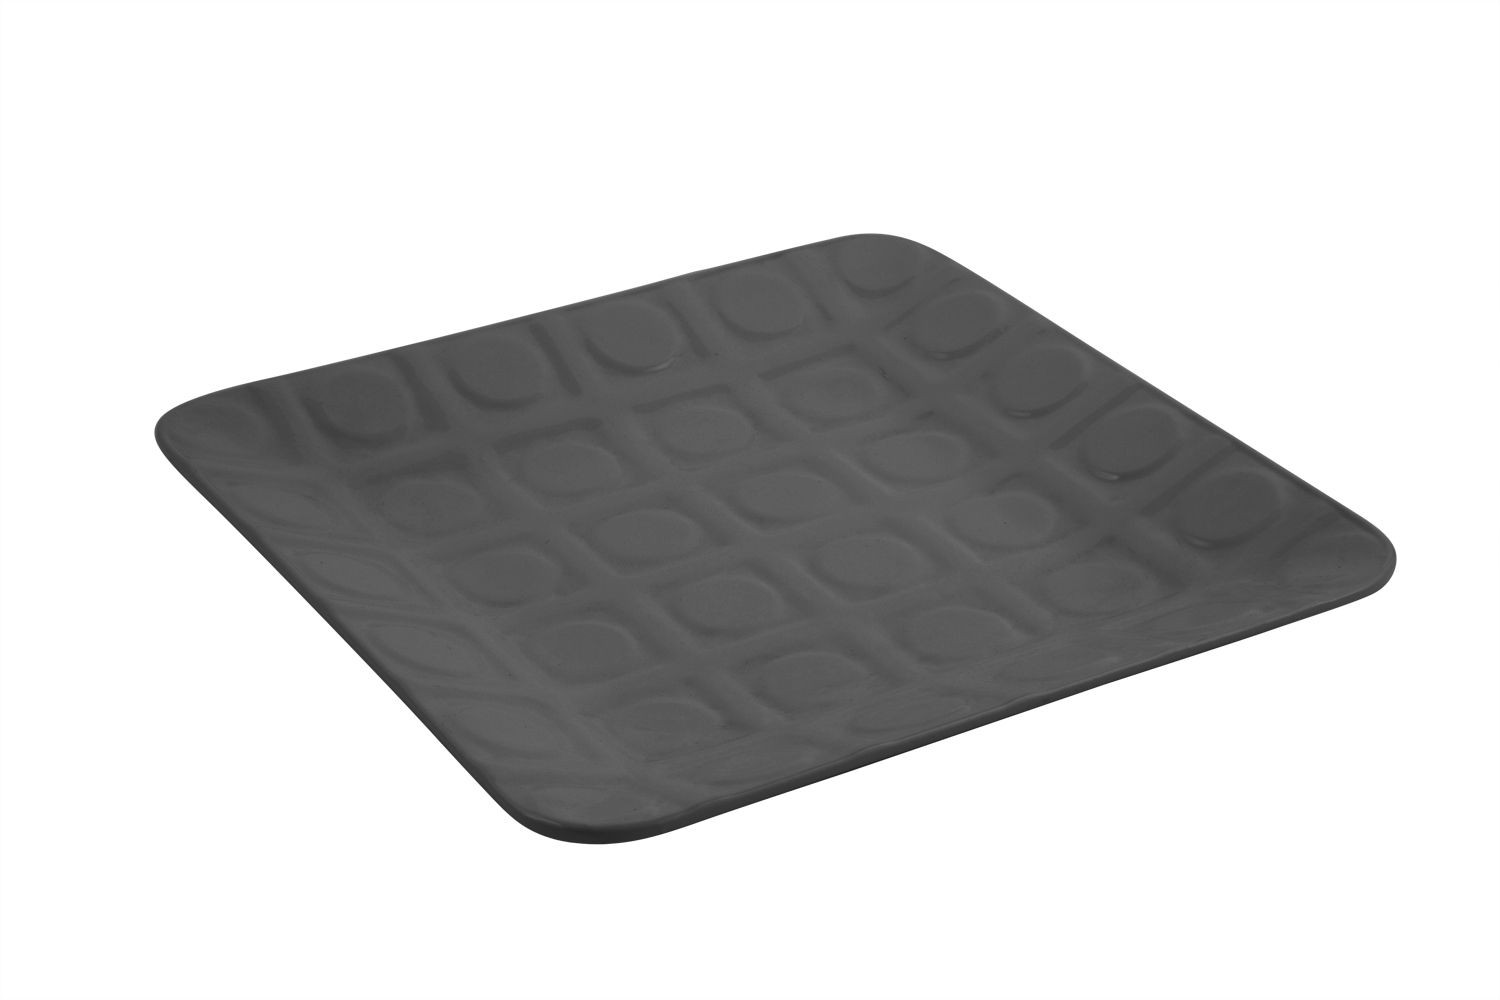 "Bon Chef 9924S Circle-Embossed Square Platter, Sandstone 12 1/2"" x 12 1/2"", Set of 2"